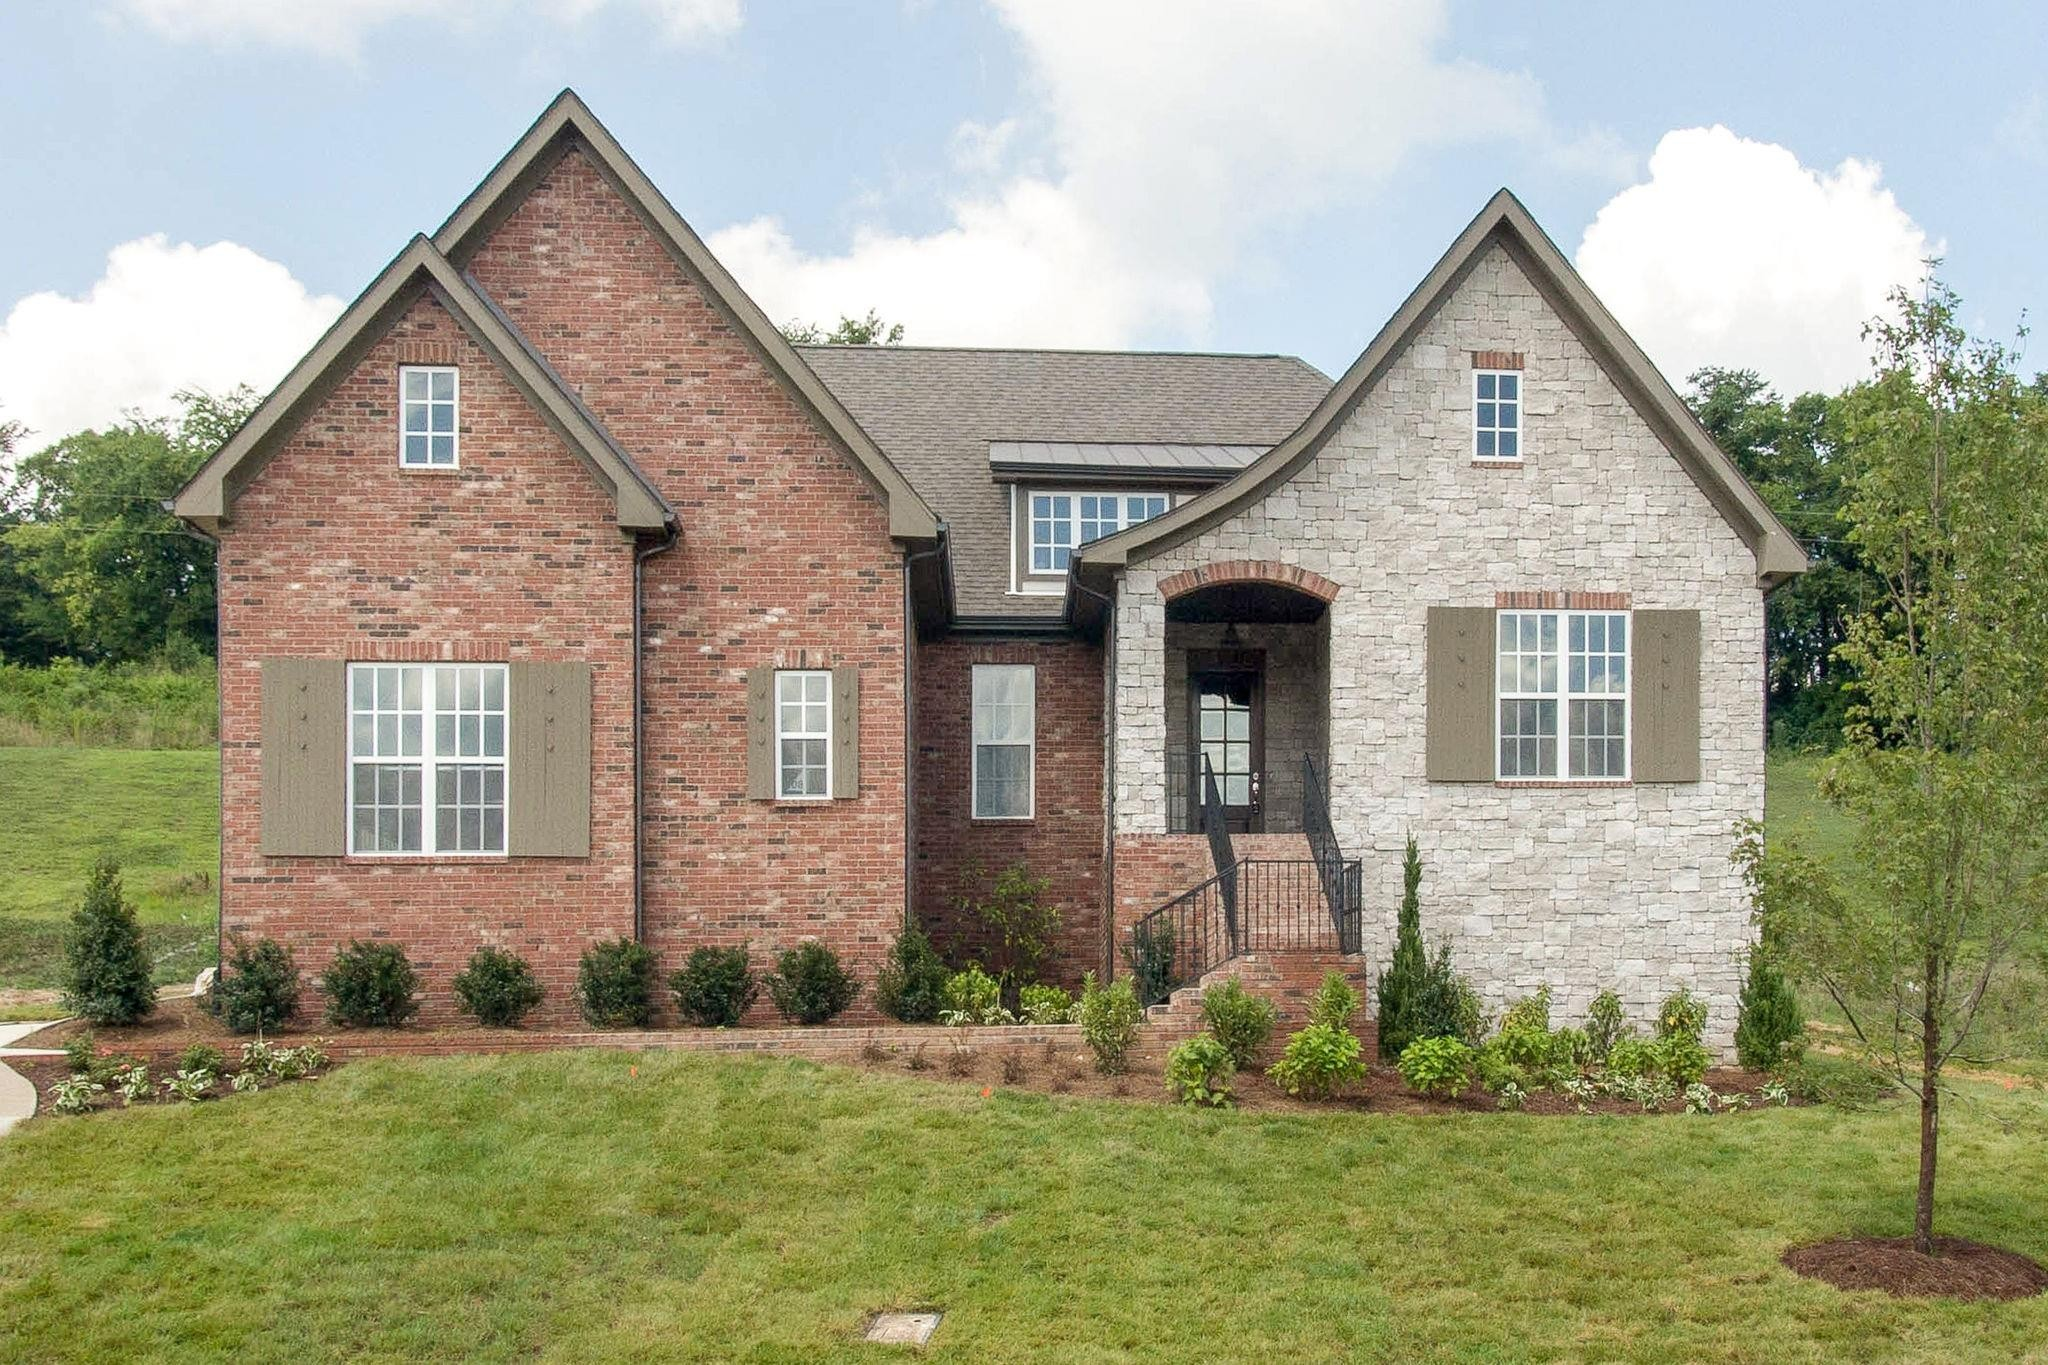 7029 Vineyard Valley Dr (108), College Grove, TN 37046 - College Grove, TN real estate listing